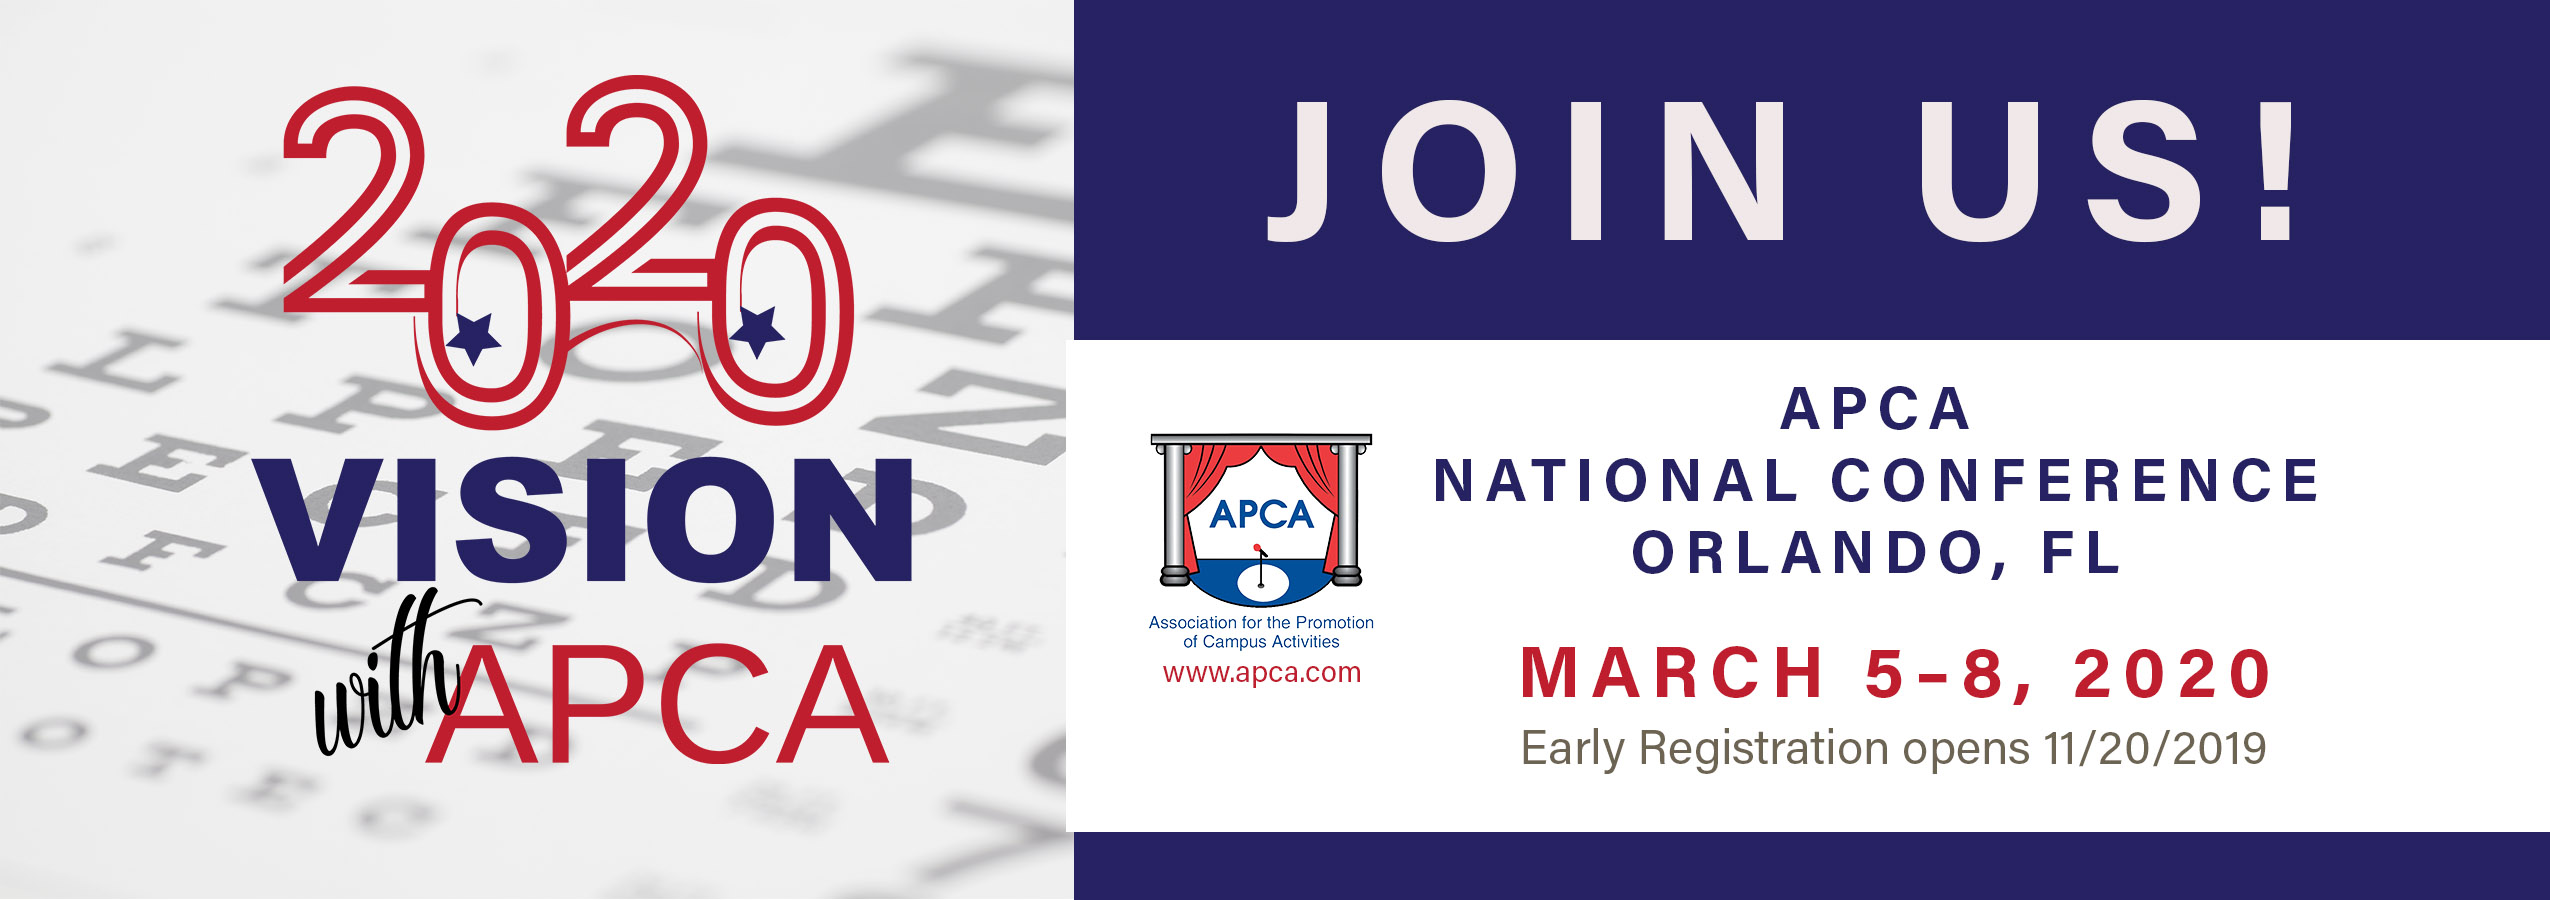 Banner for APCA 2020 National conference